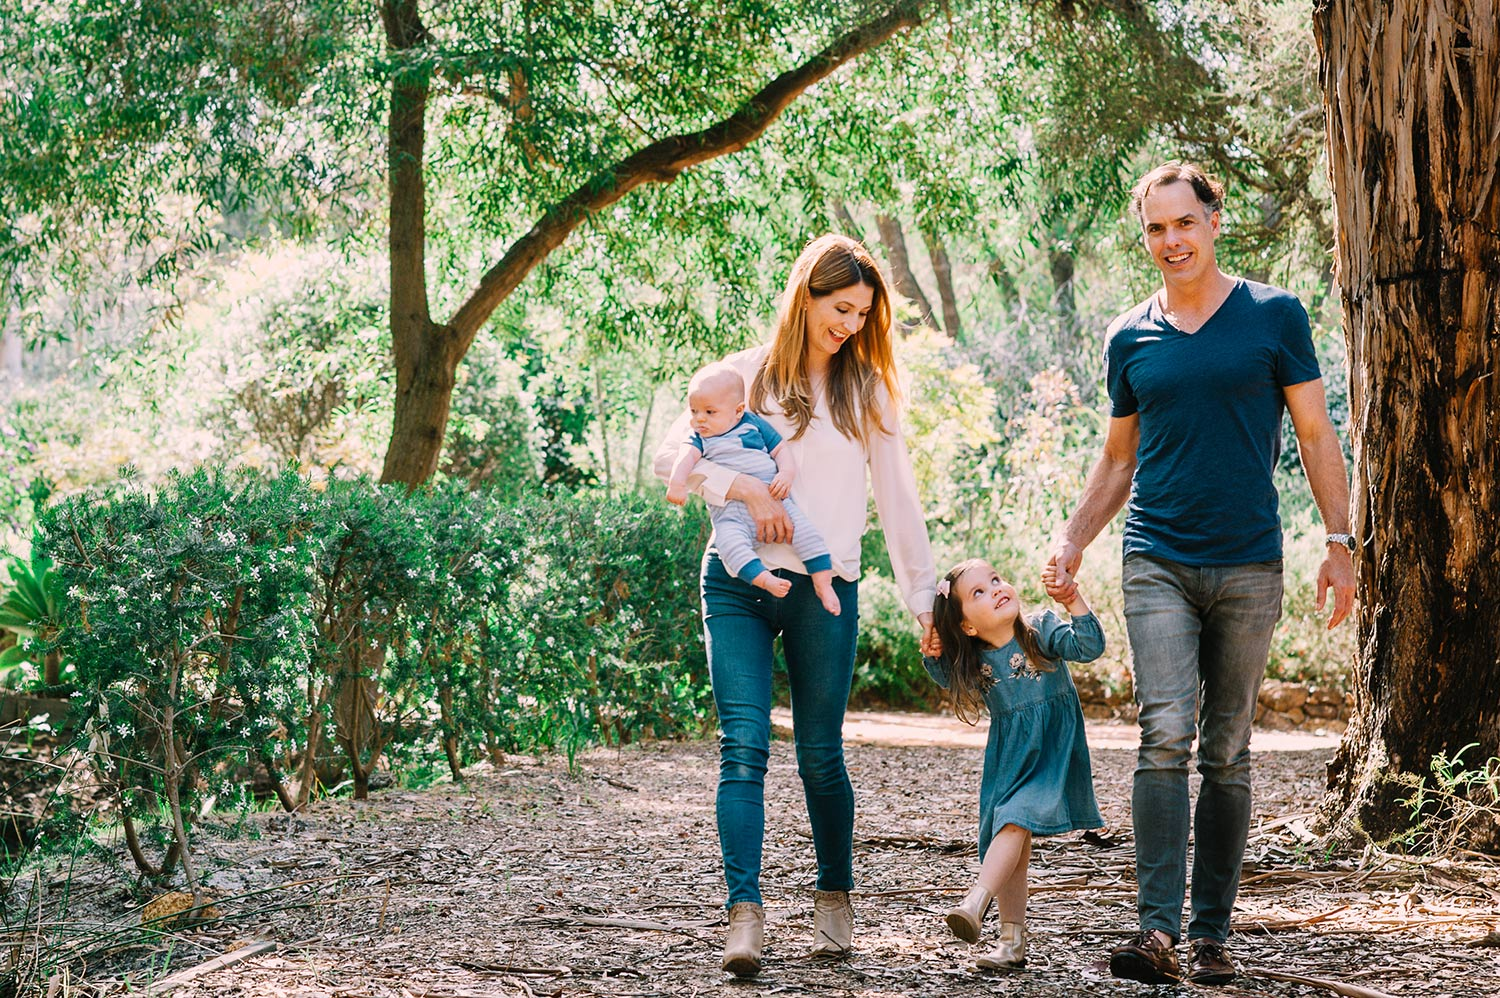 Mum, dad and kids in forest - photographer in perth